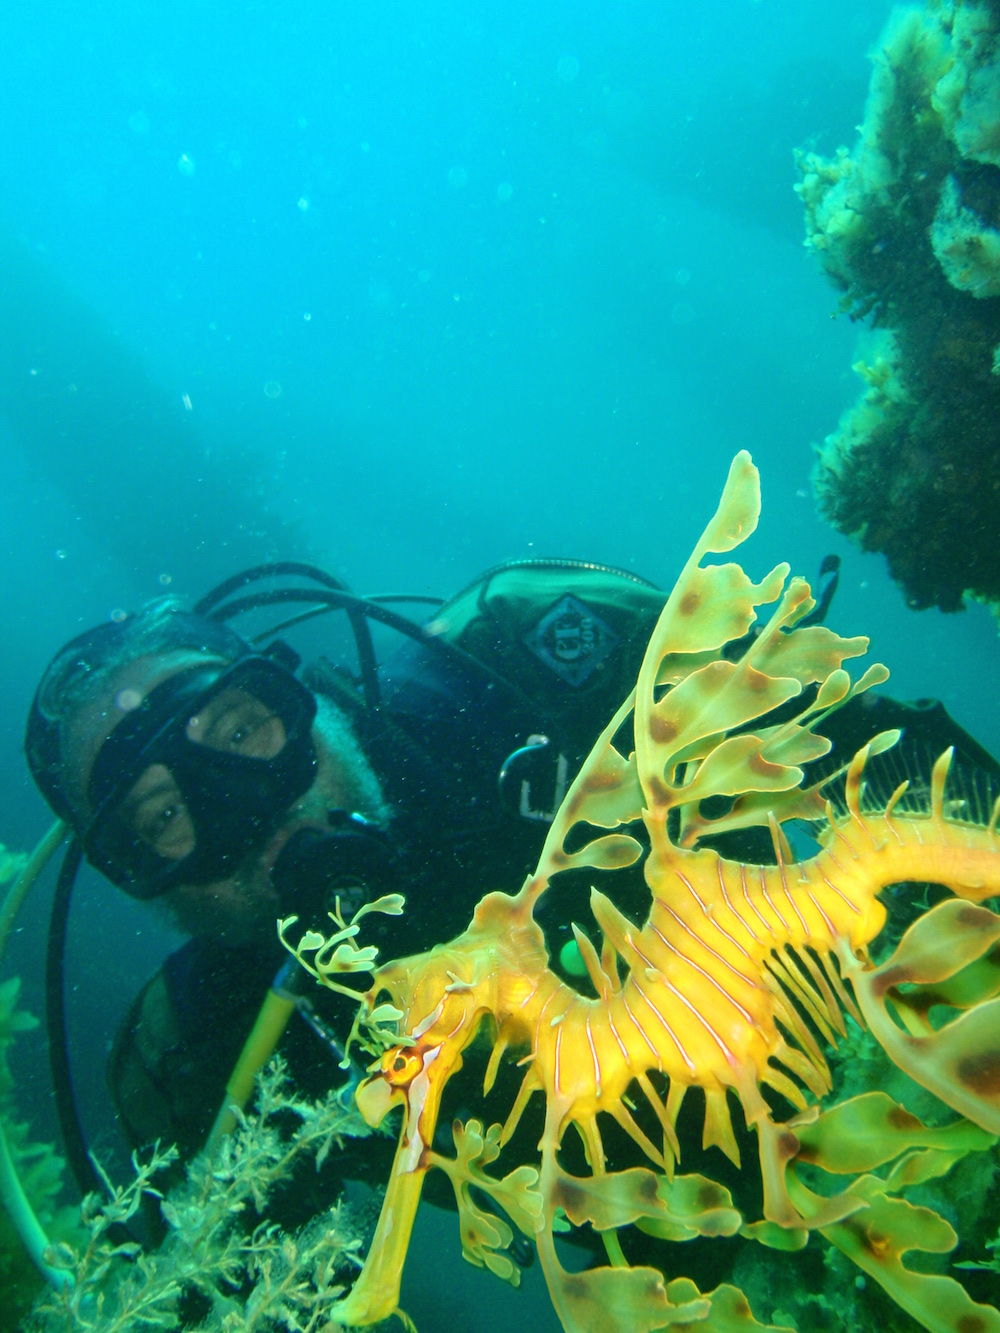 Diver with leafy sea dragon at Rapid Bay jetty. Photo P.B.Southwood, Wikicommons